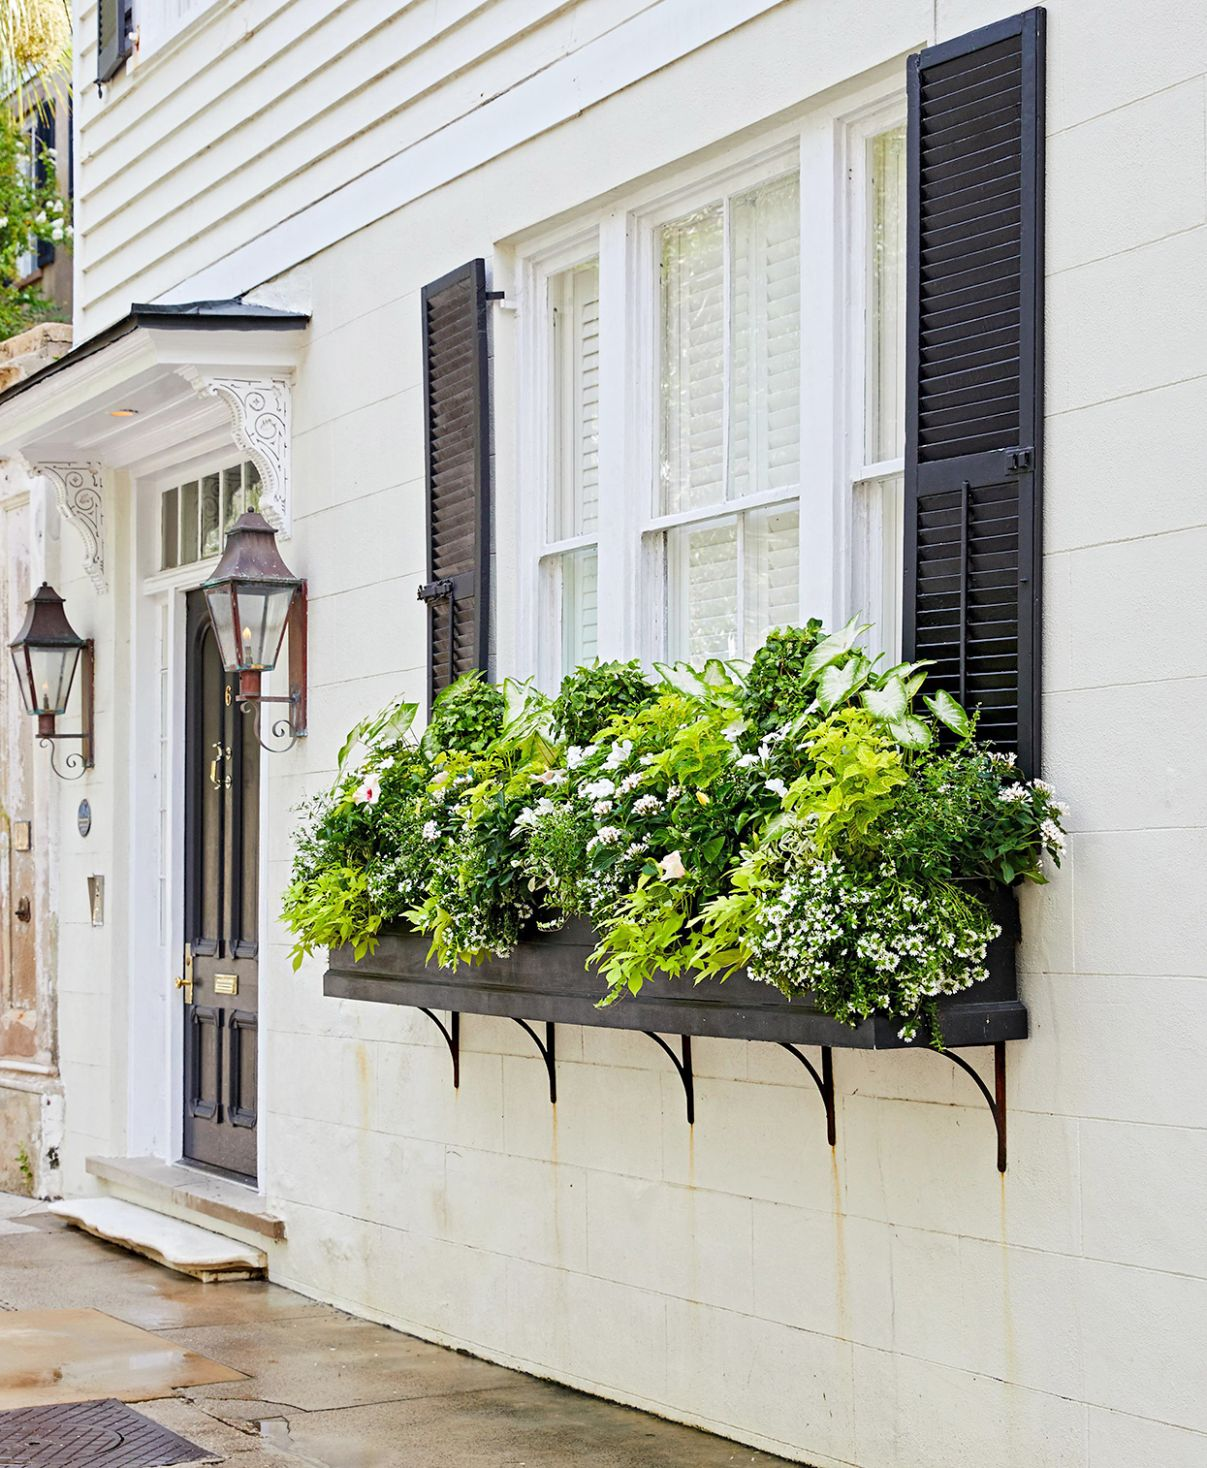 How to Plant a Window Box Like a Pro | Better Homes & Gardens - window box ideas